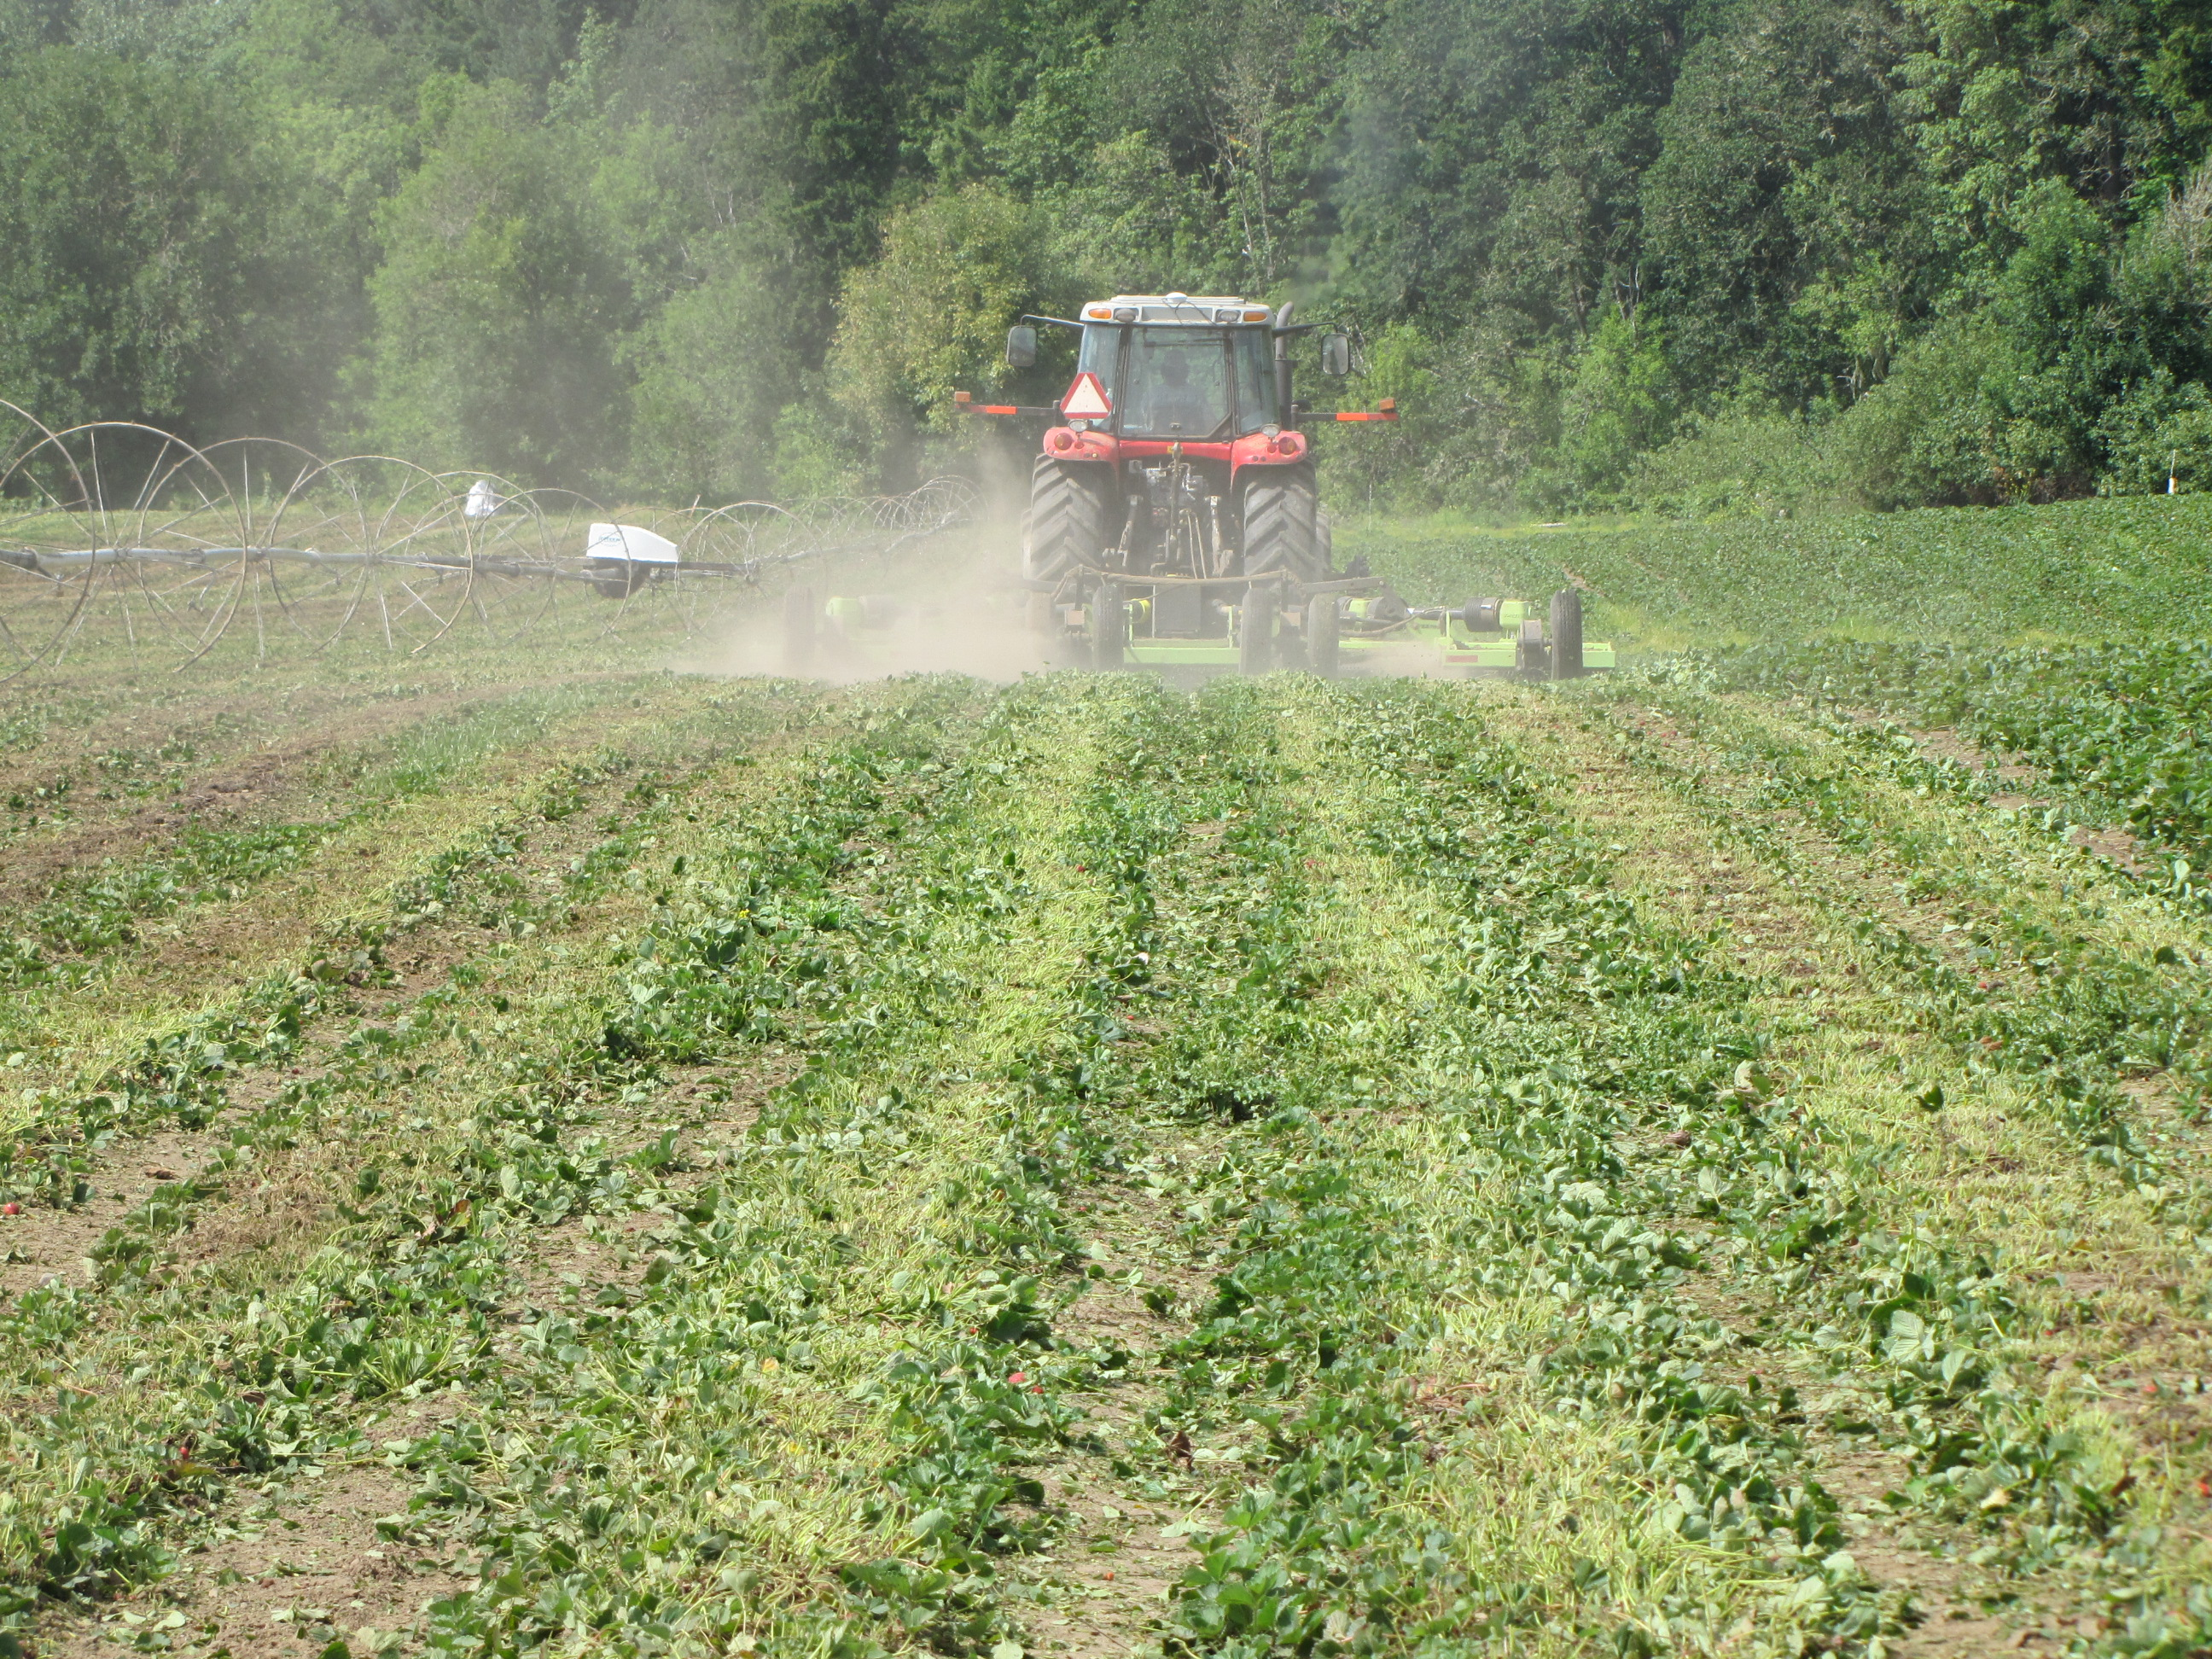 Figure 5. A June-bearing strawberry field in Oregon being renovated (mowed) a couple of weeks after the last fruit harvest.